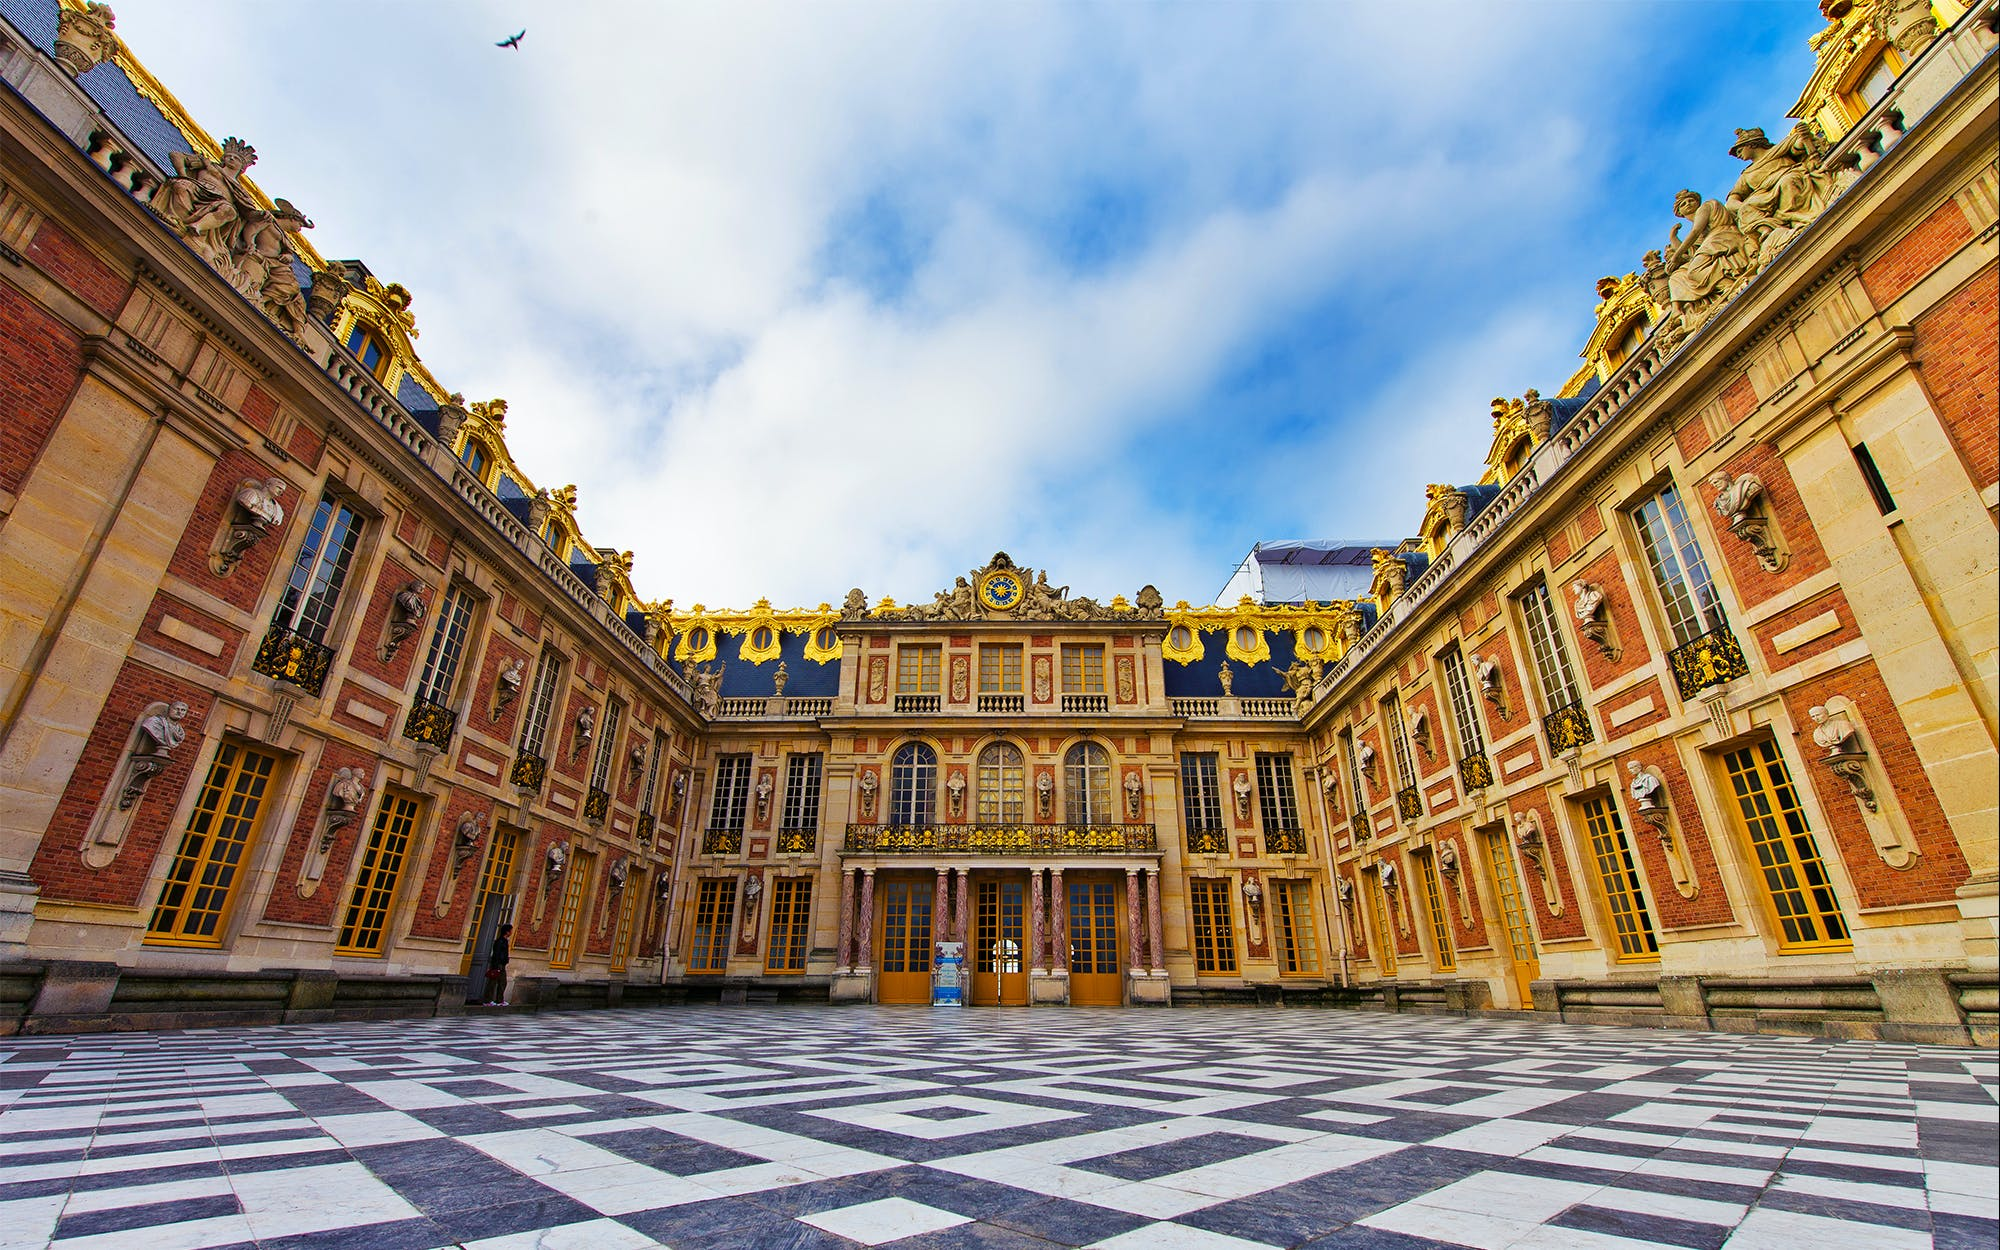 Skip the Line: Versailles Palace & Gardens Tour from Paris